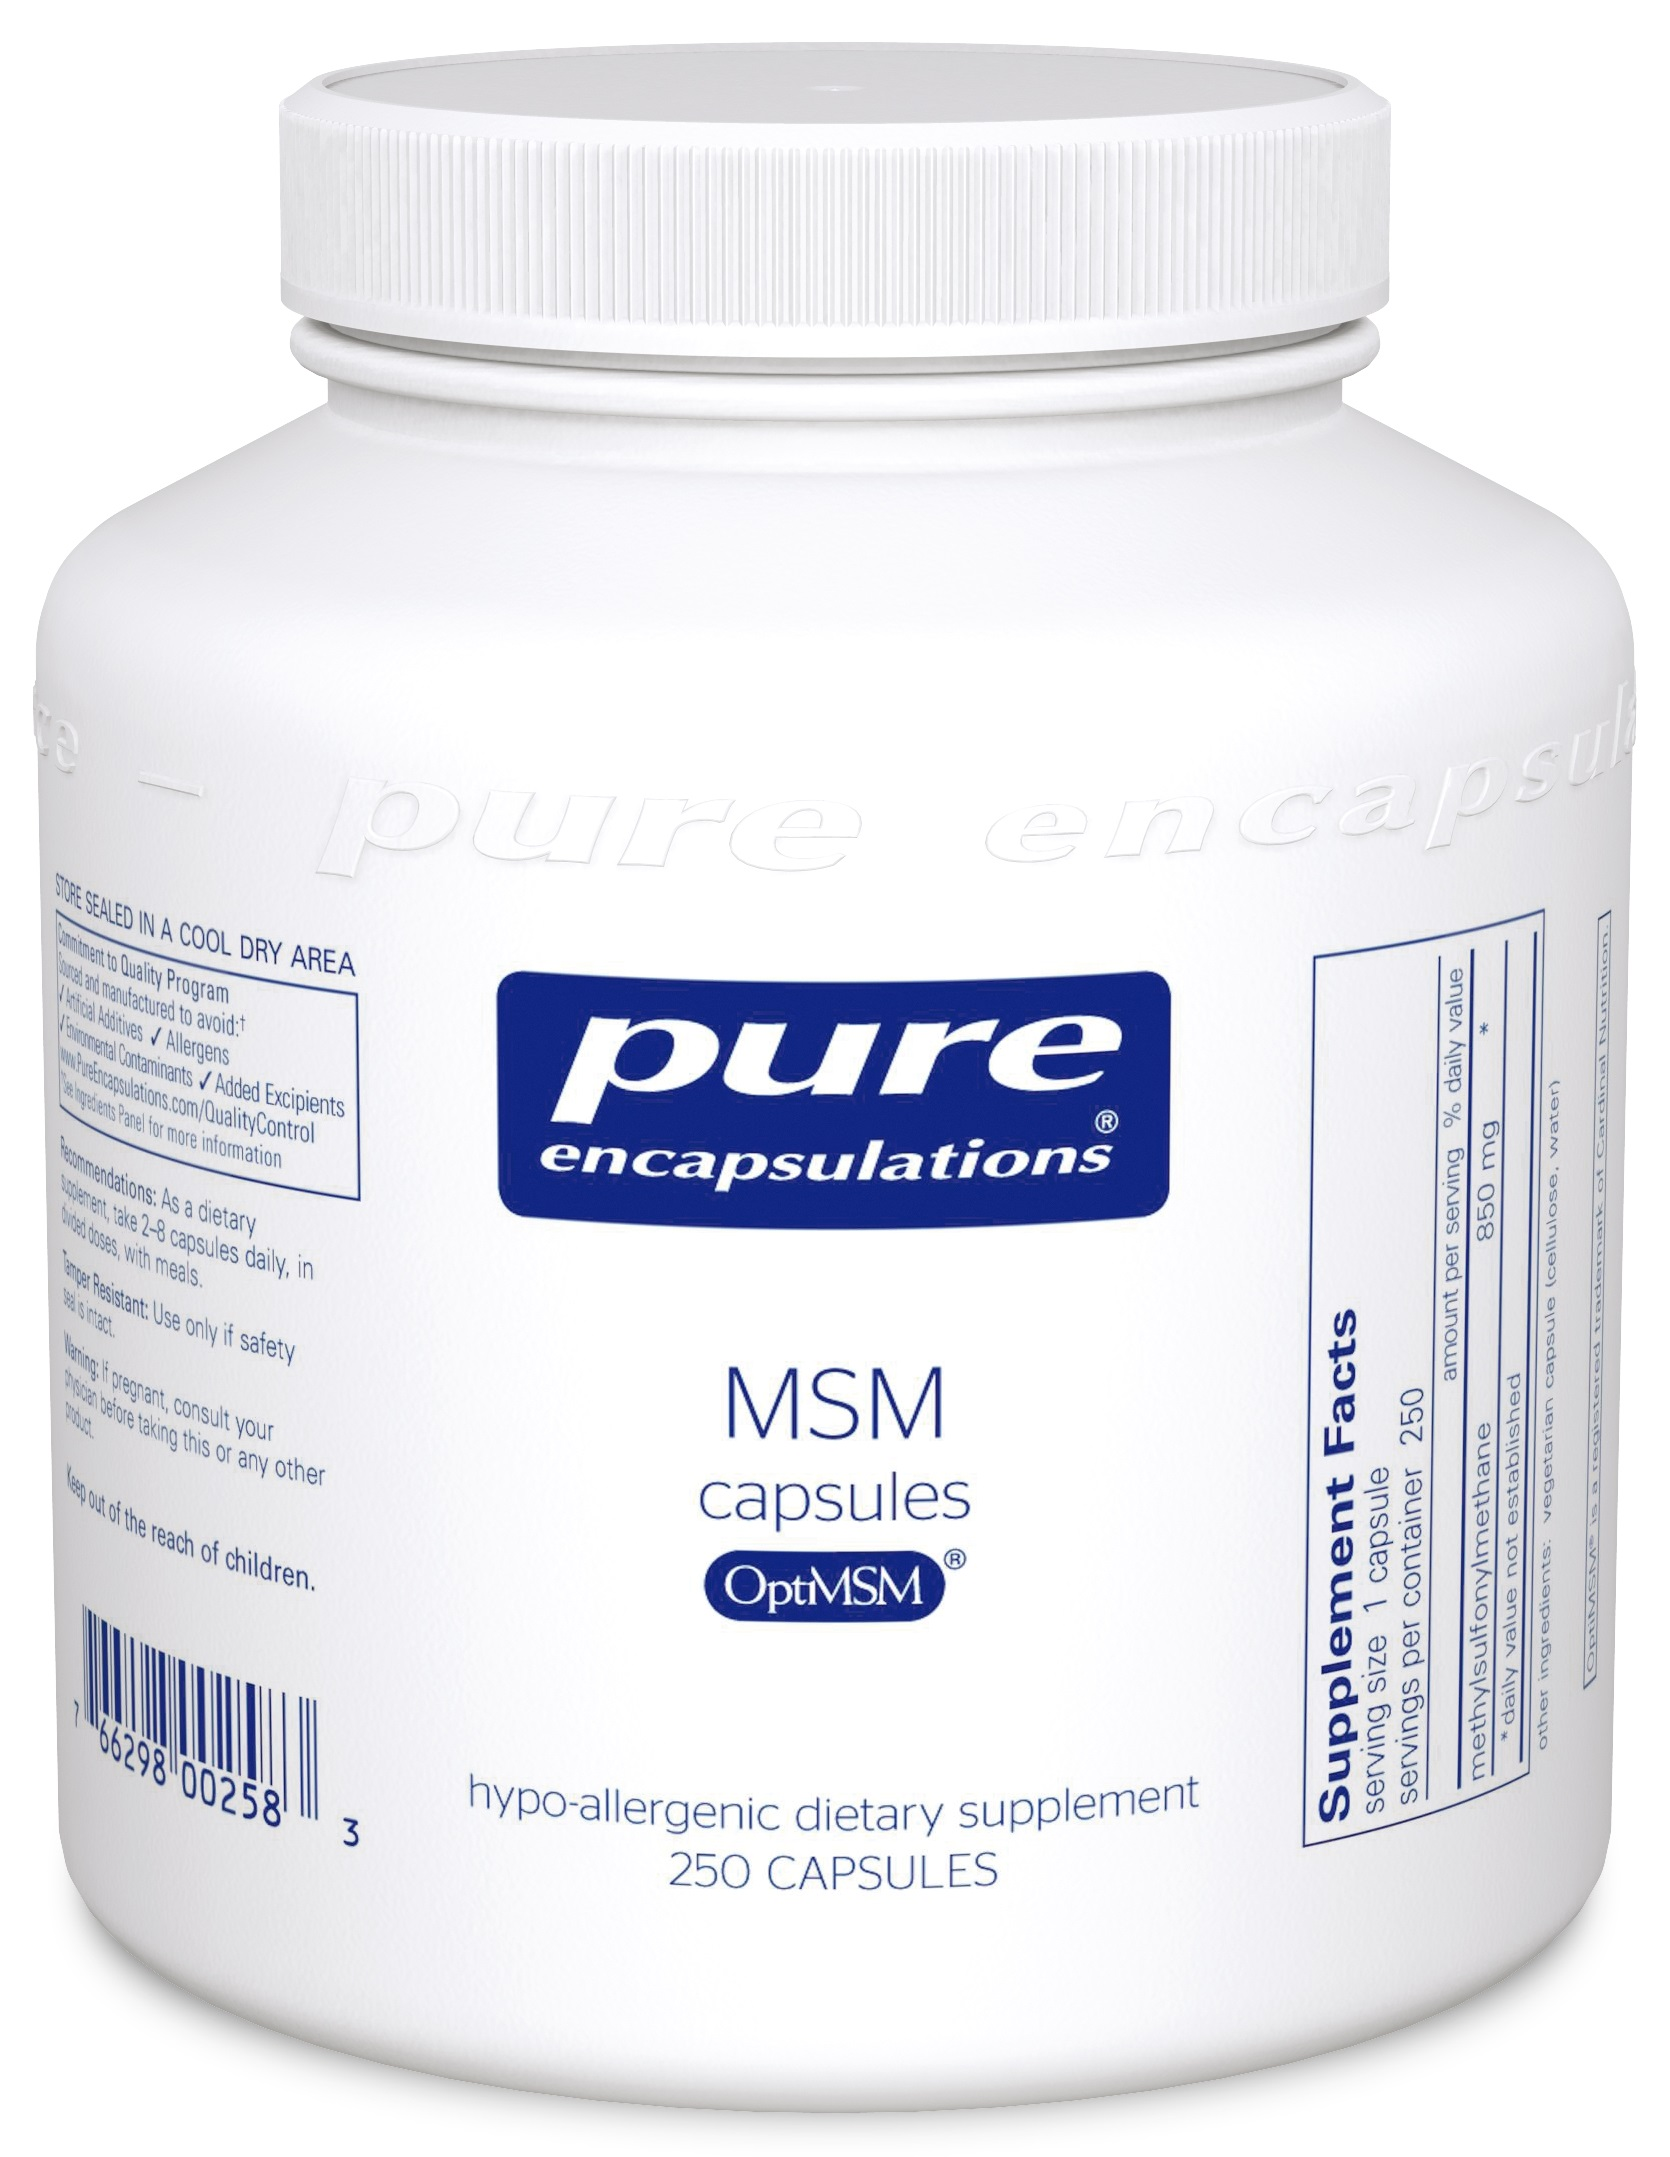 Pure Encapsulations MSM capsules